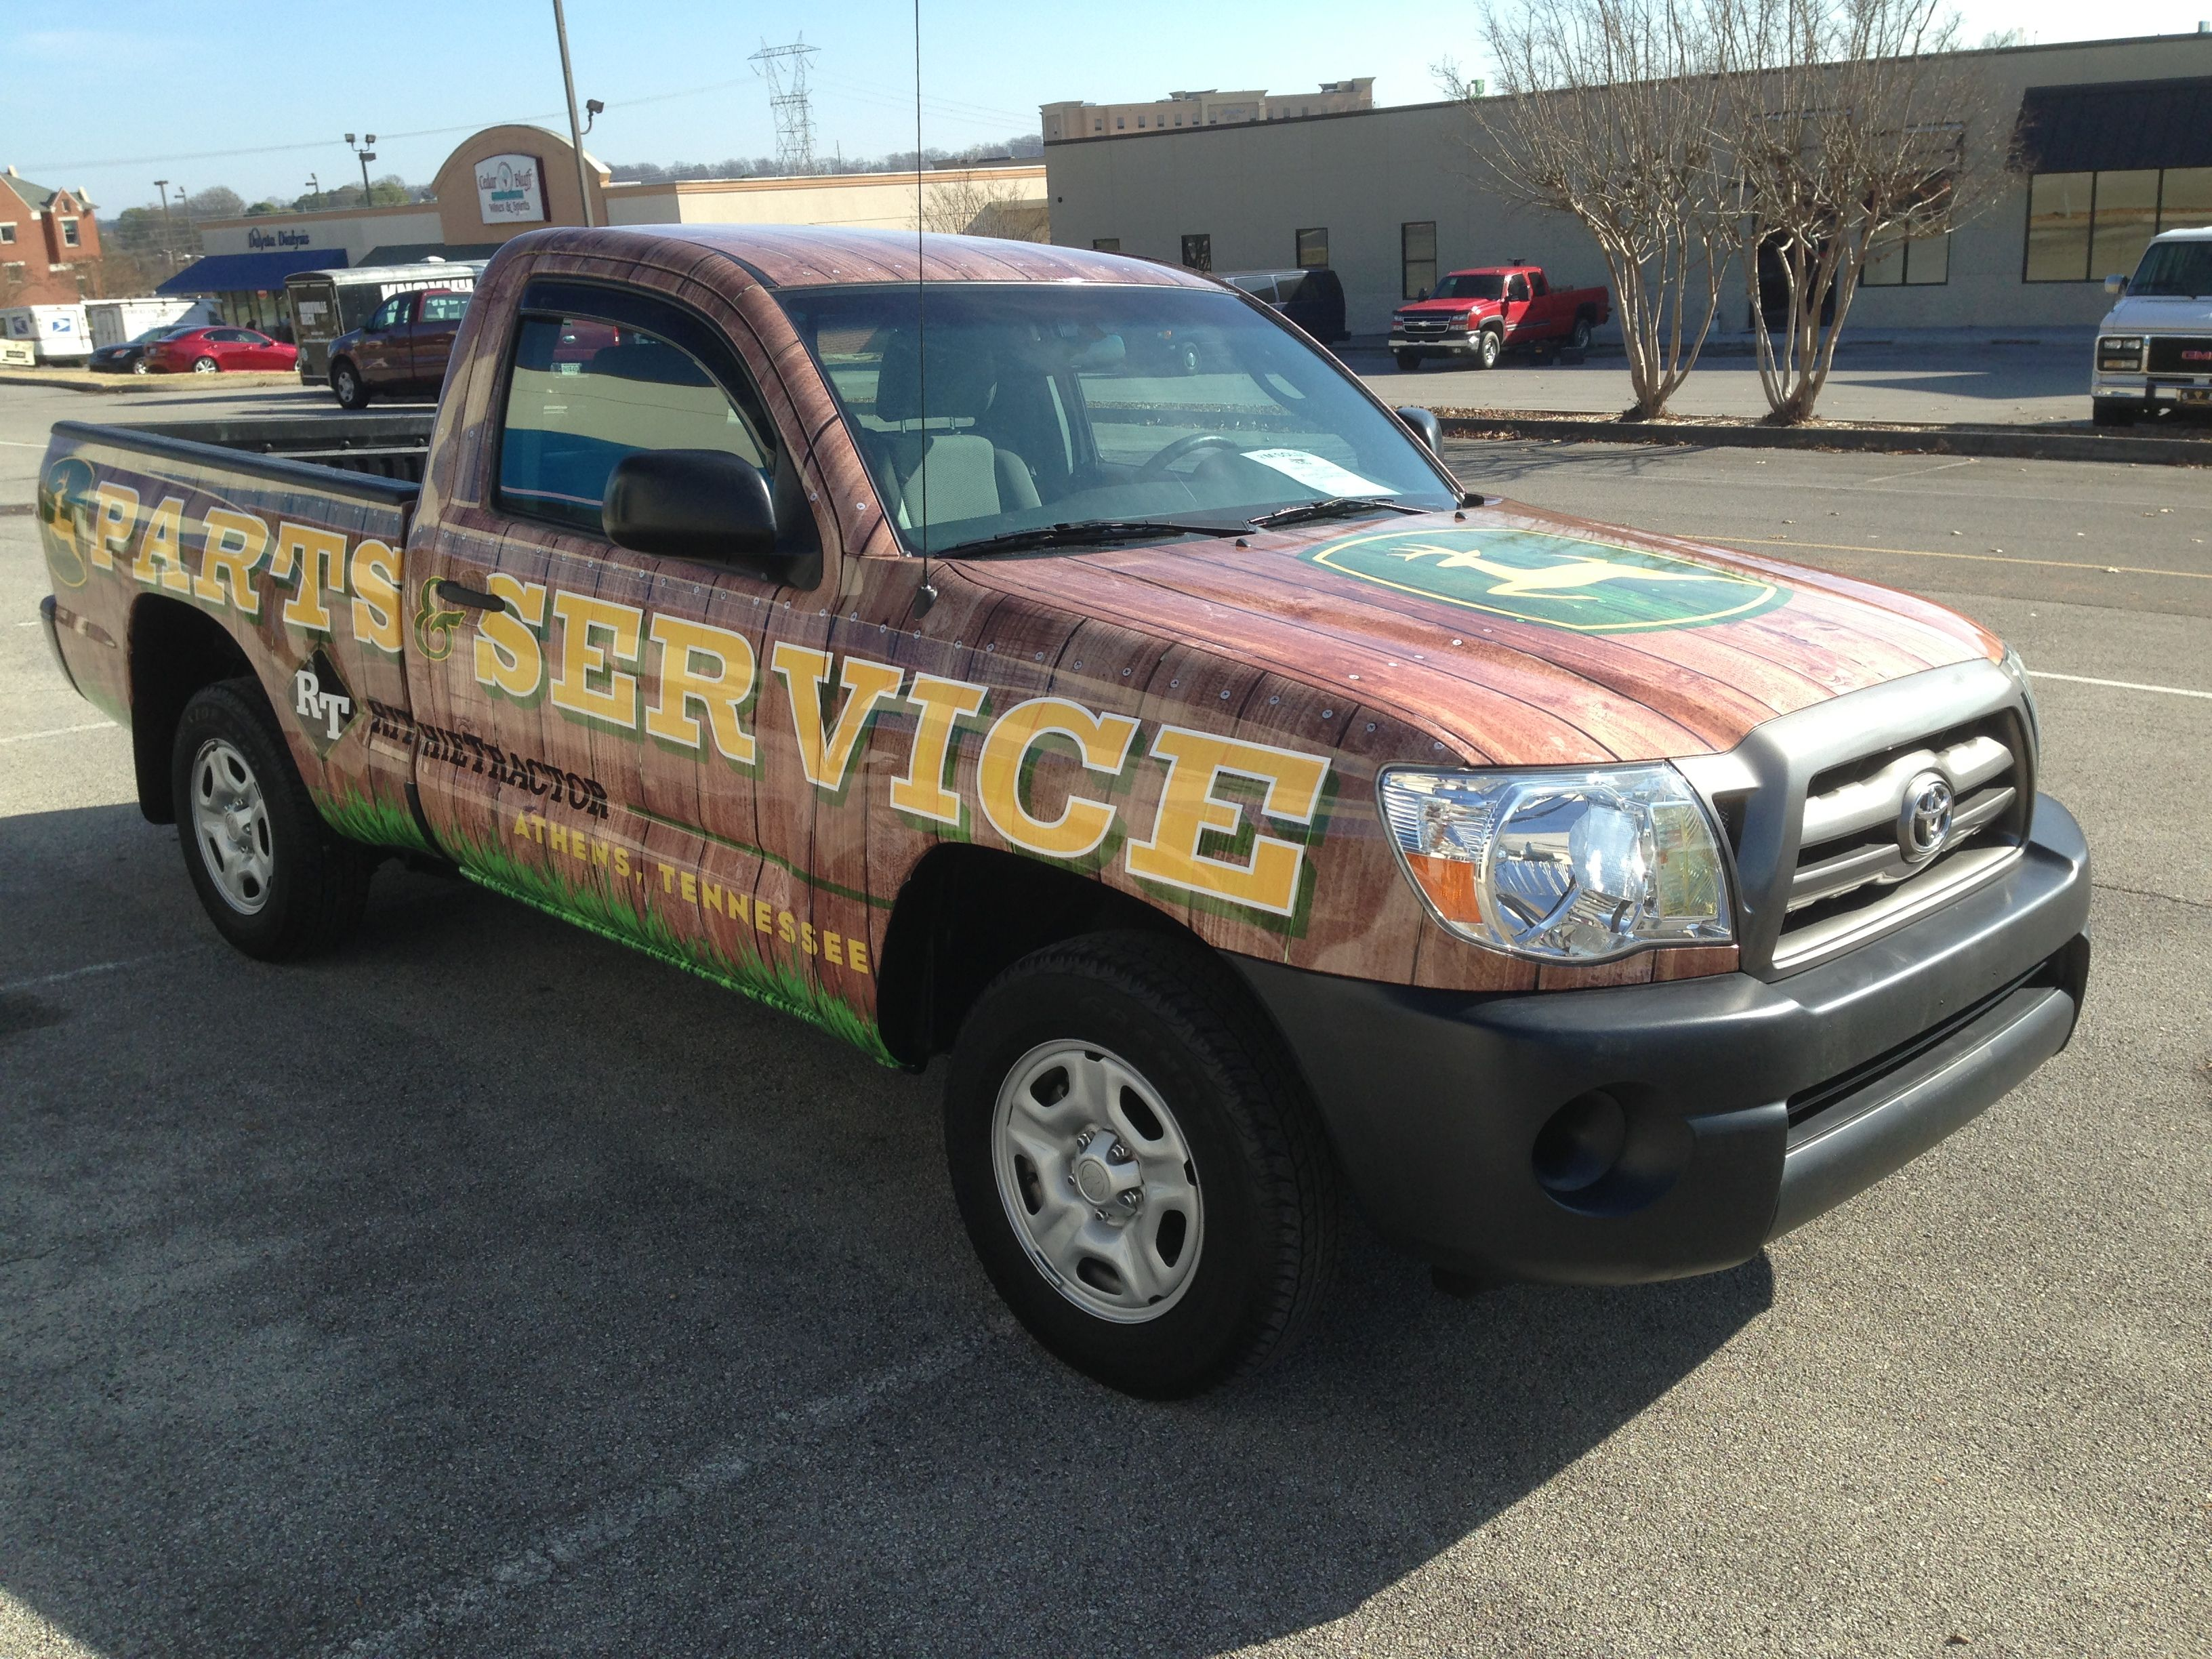 Ritchie Tractor Toyota Truck Wrap - Knoxville, TN #vehiclegraphics #vehiclewraps